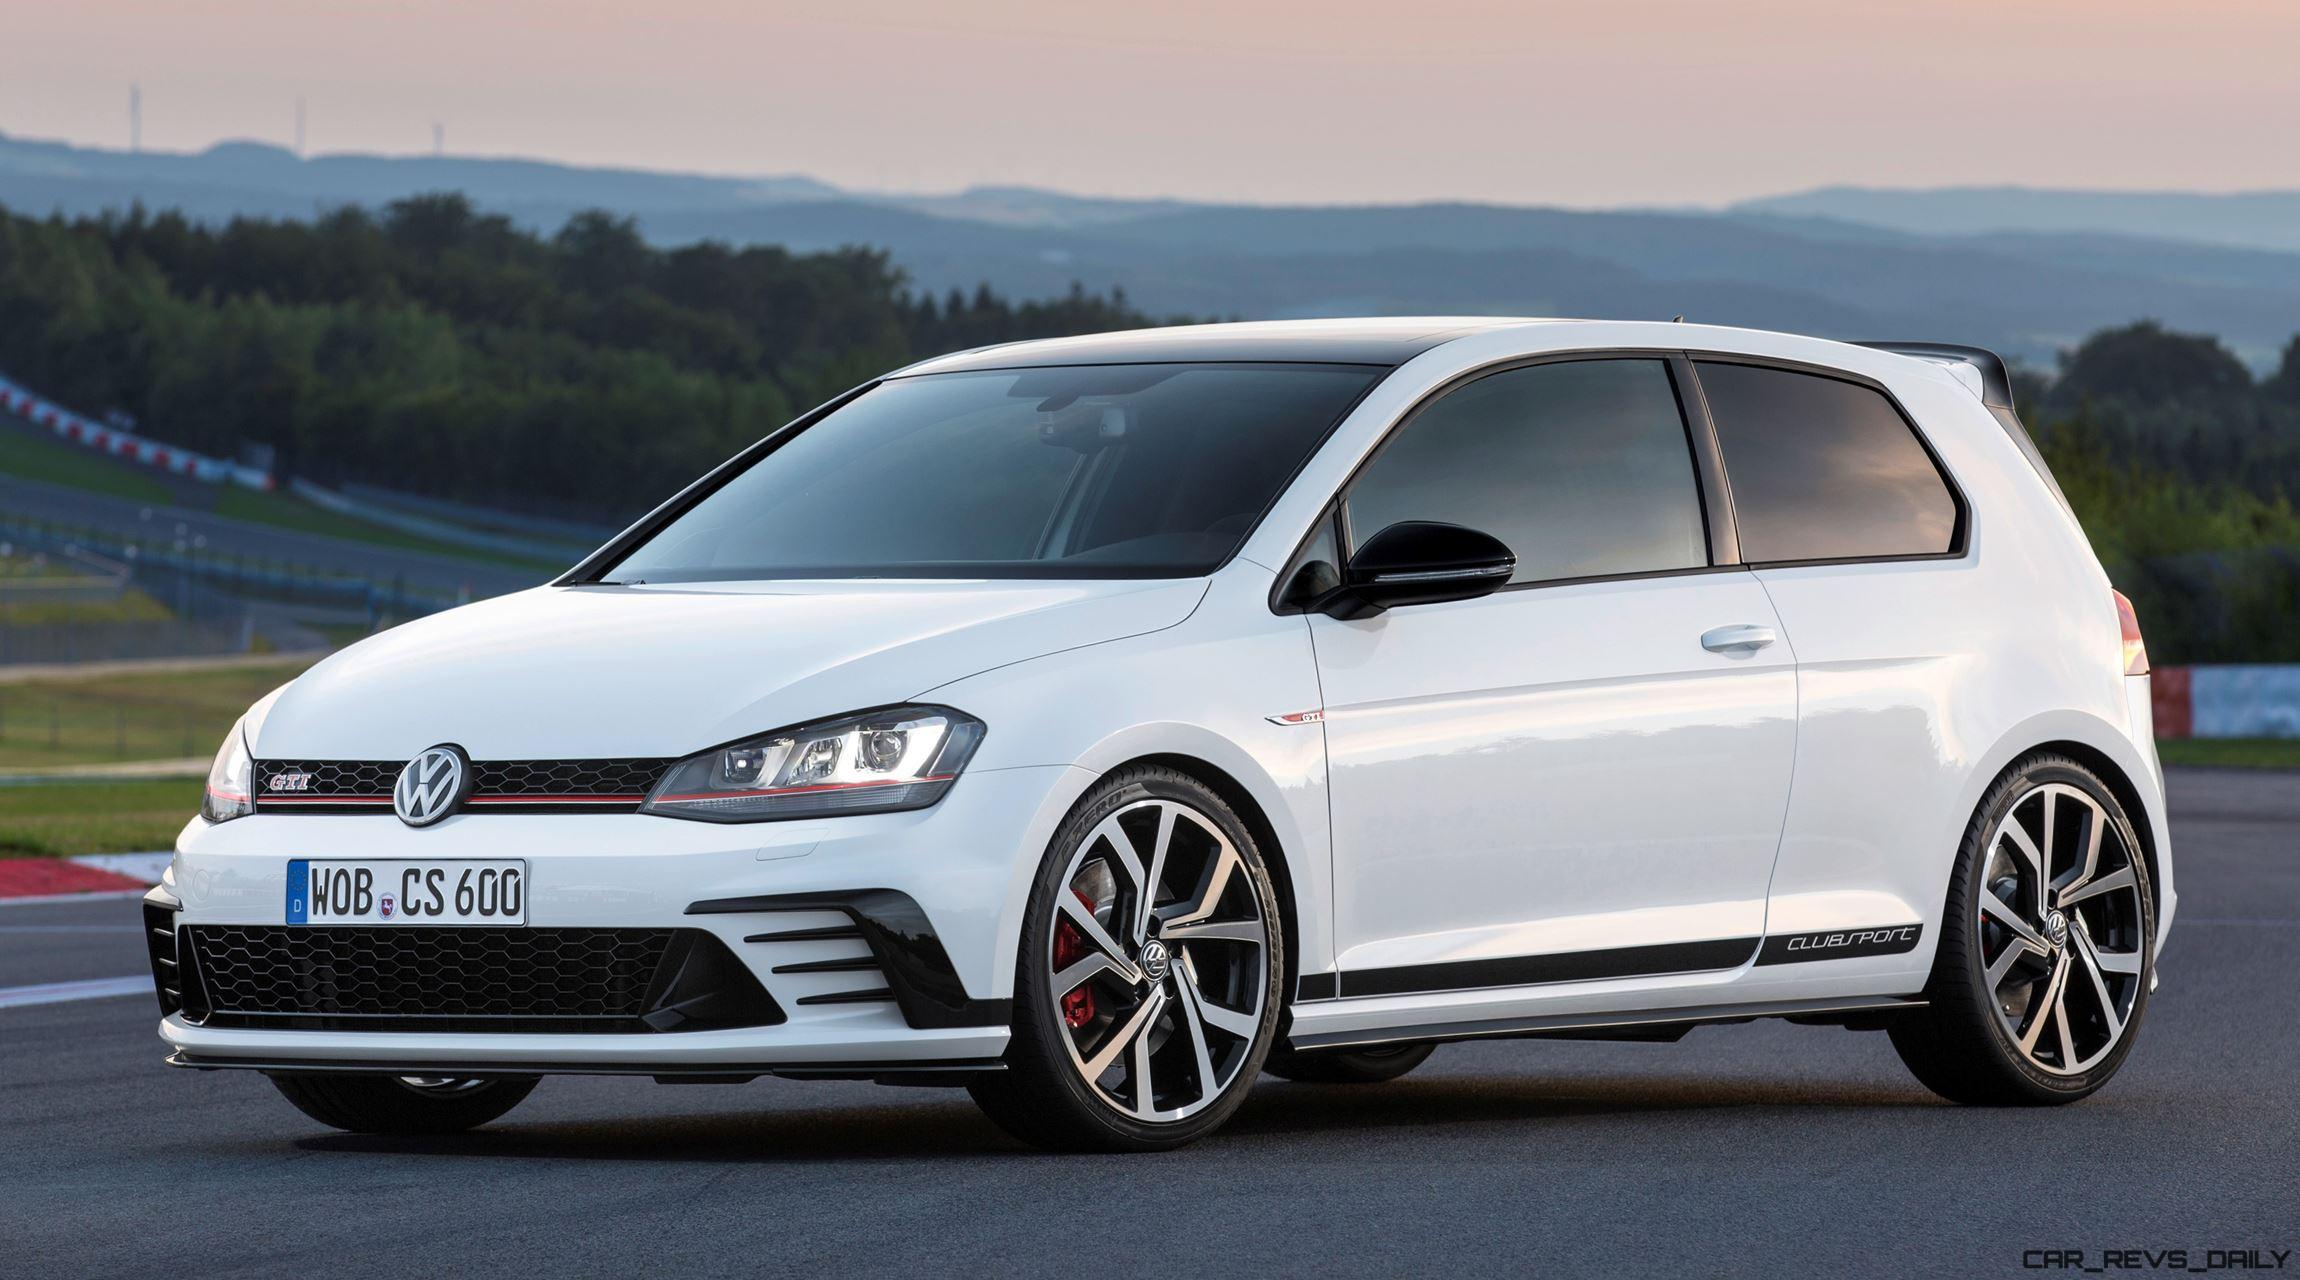 2016 volkswagen gti clubsport edition 40 locking diff slicks and aerokit for r powered front. Black Bedroom Furniture Sets. Home Design Ideas